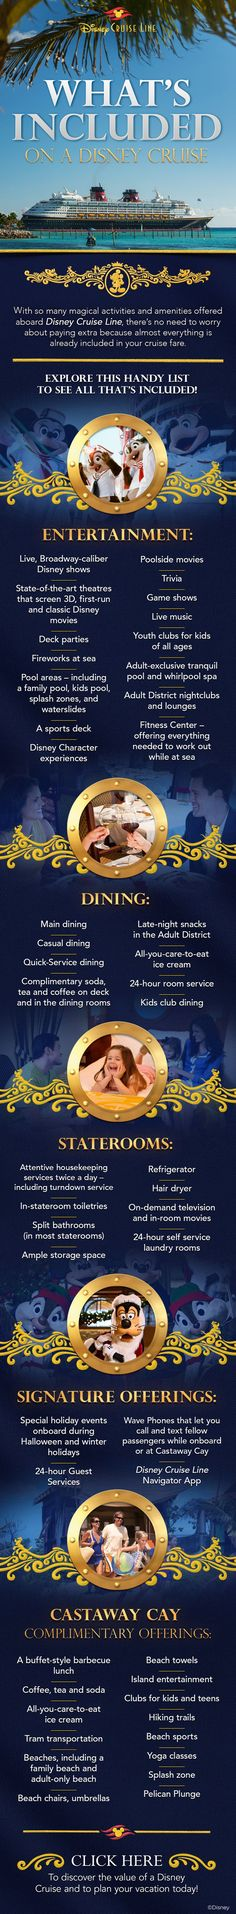 Everything that's included on your Disney Cruise!   www.swawtraveldenise.com